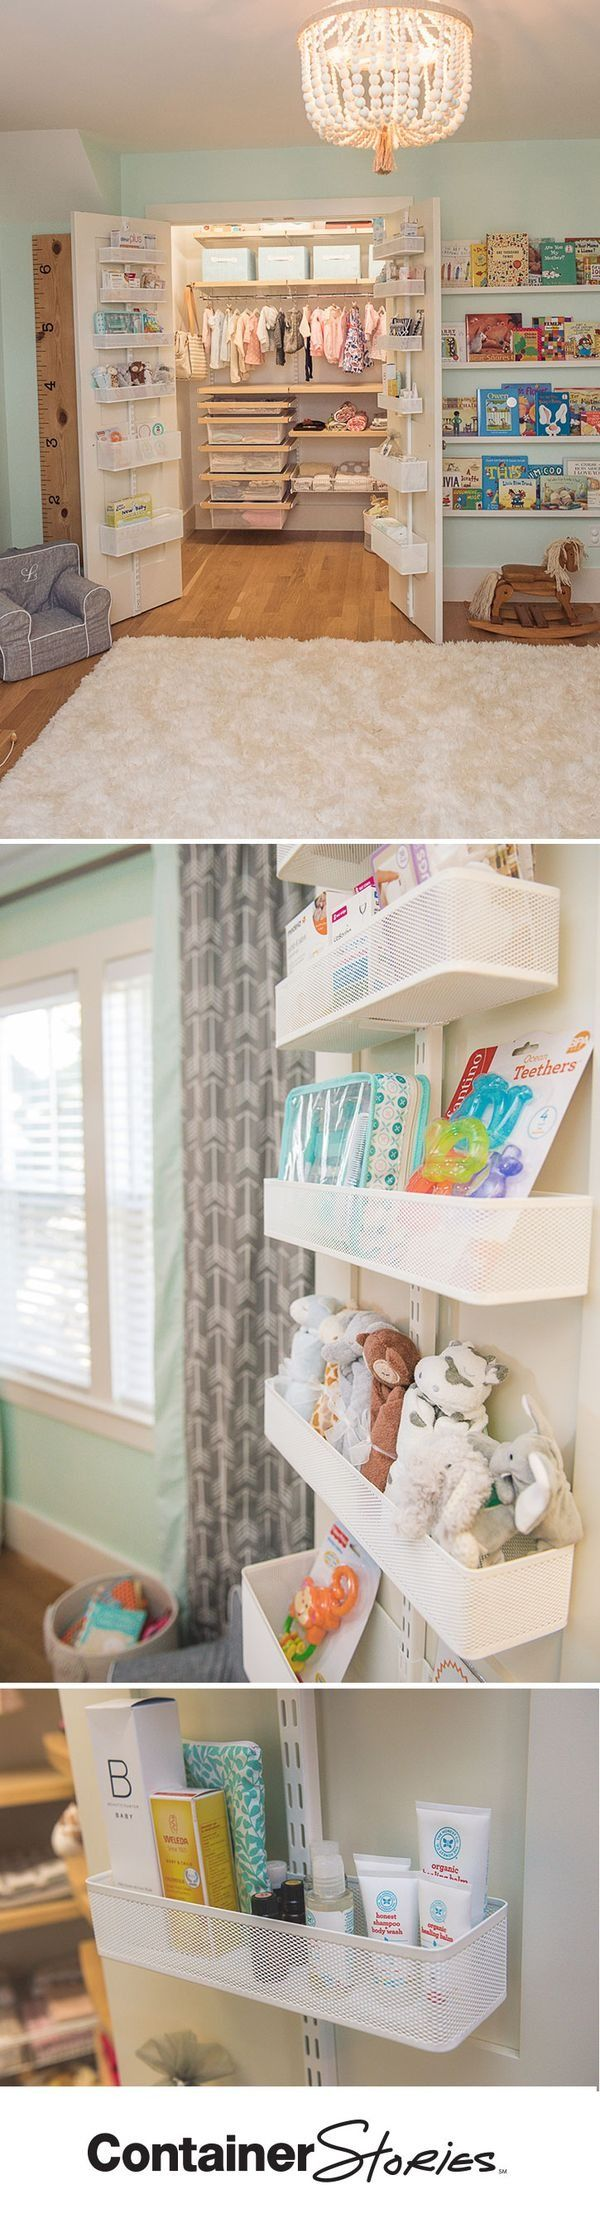 Design expert and HGTV stars, Peyton and Chris Lambton agree! No nursery closet is complete without elfa utility Door & Wall Racks. We made sure to outfit their double doors with them. Mesh Baskets are easily moved as needed. The different sizes accommodate everything from small toys to teethers and diapering supplies.